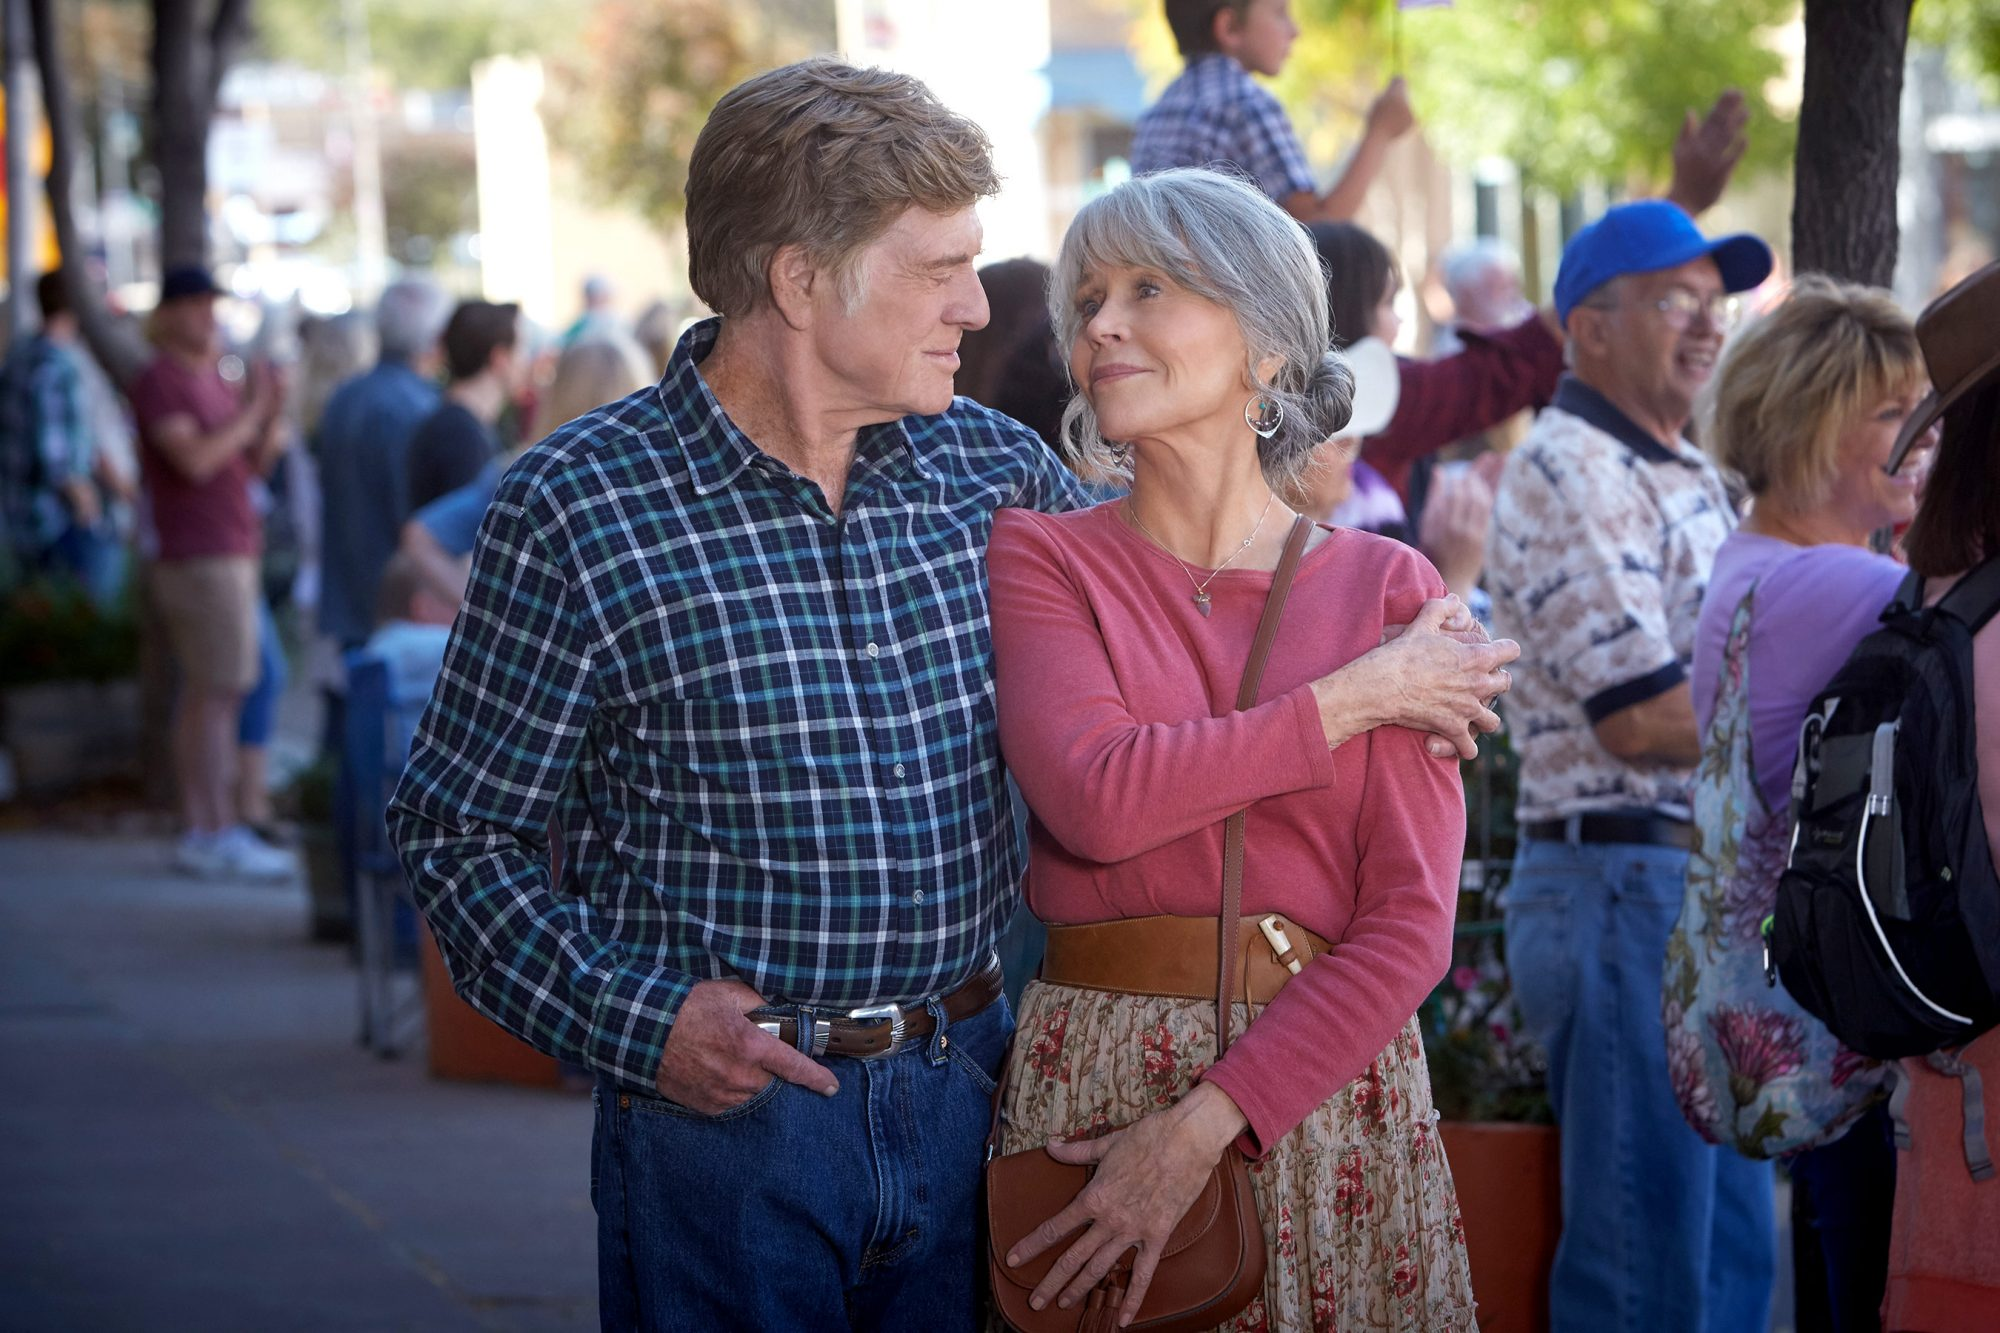 Jane Fonda, Robert Redford to receive lifetime achievement awards at Venice